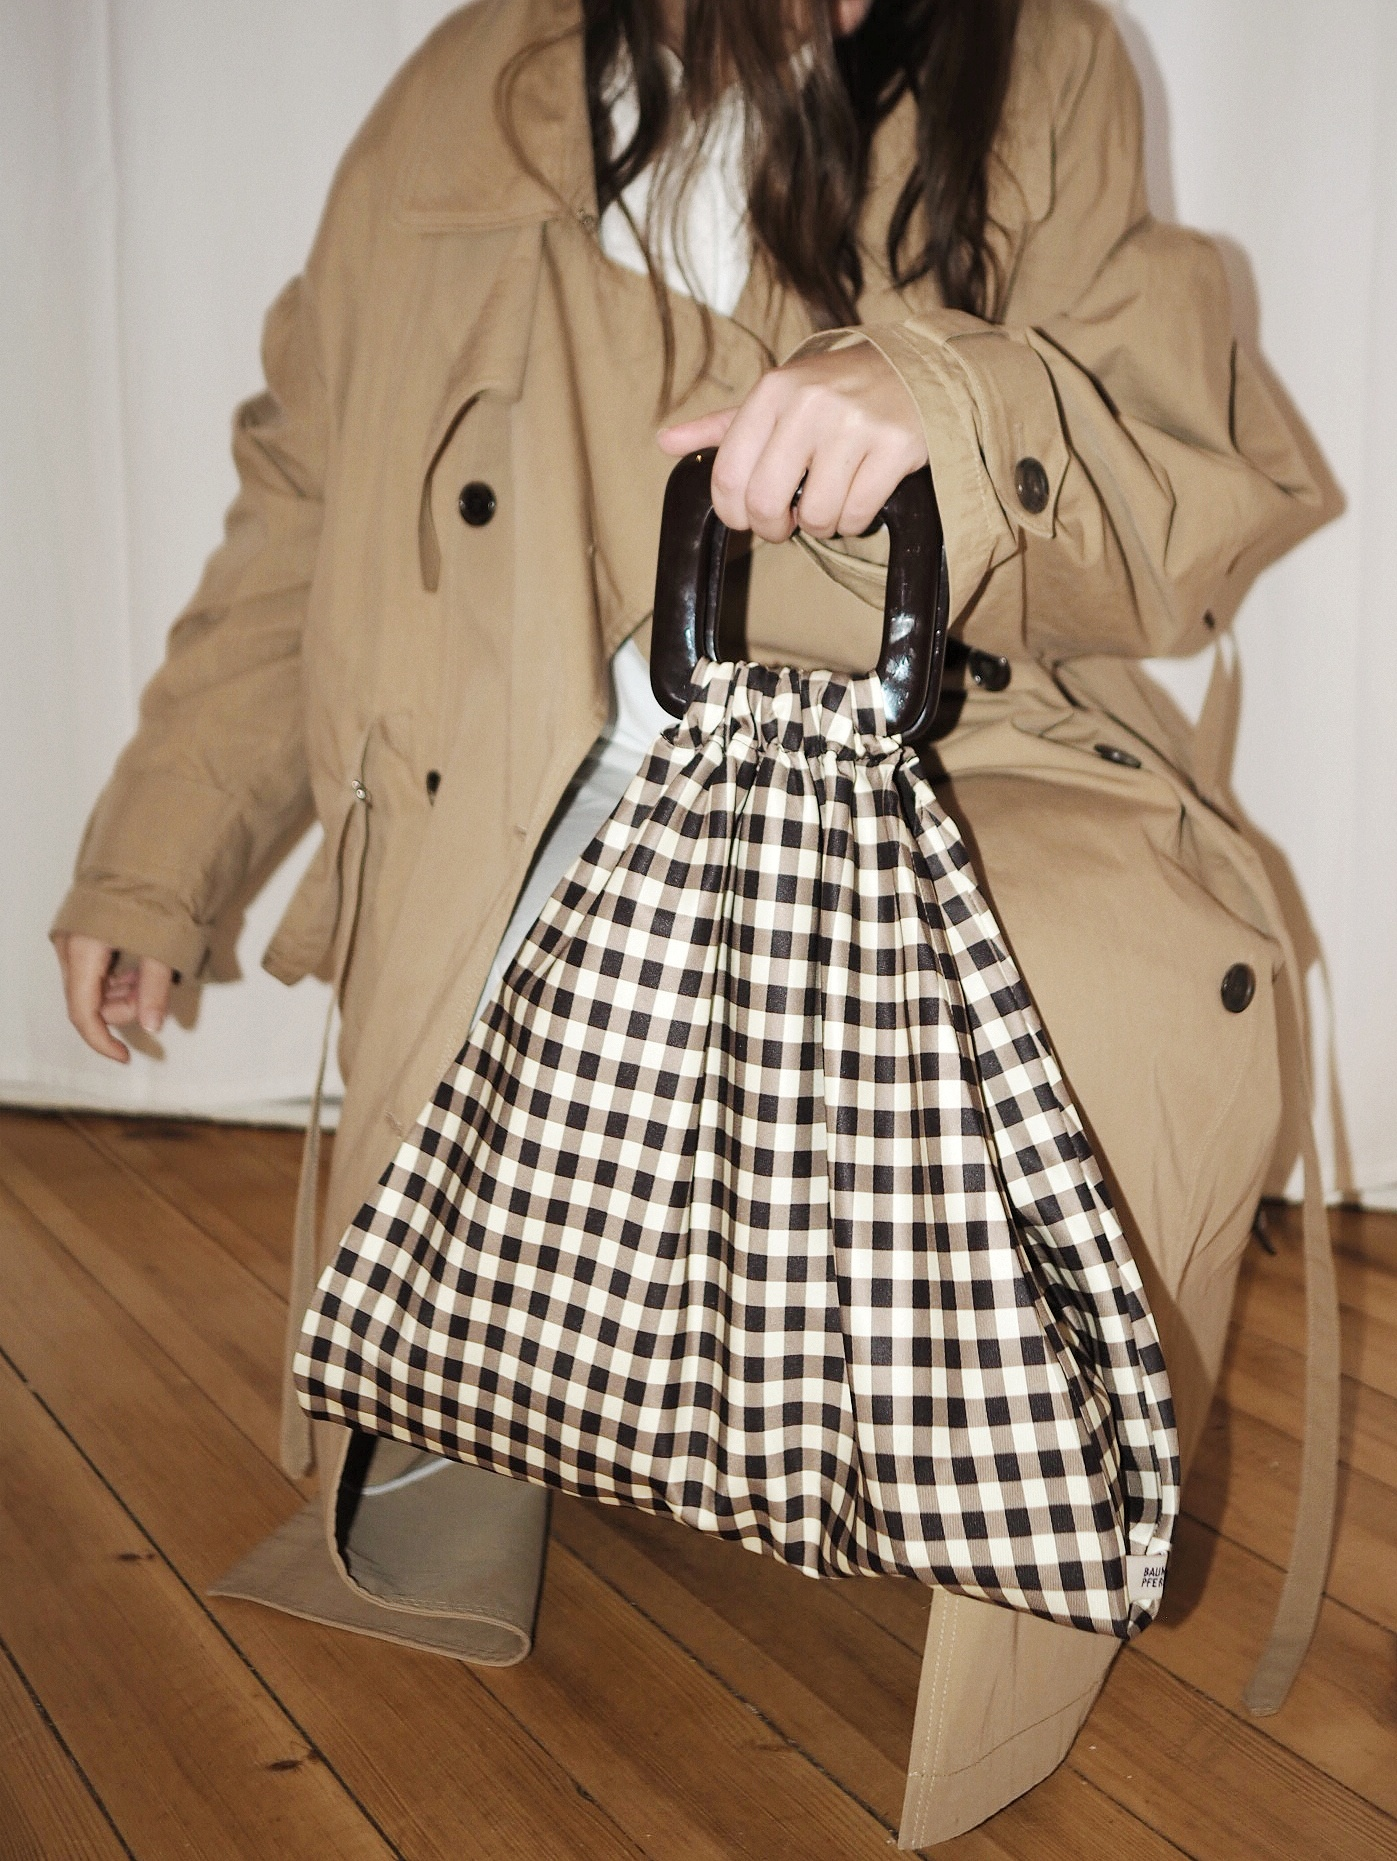 baum-und-pferdgarten-bag-pushbutton-trenchcoat-julia-carevic